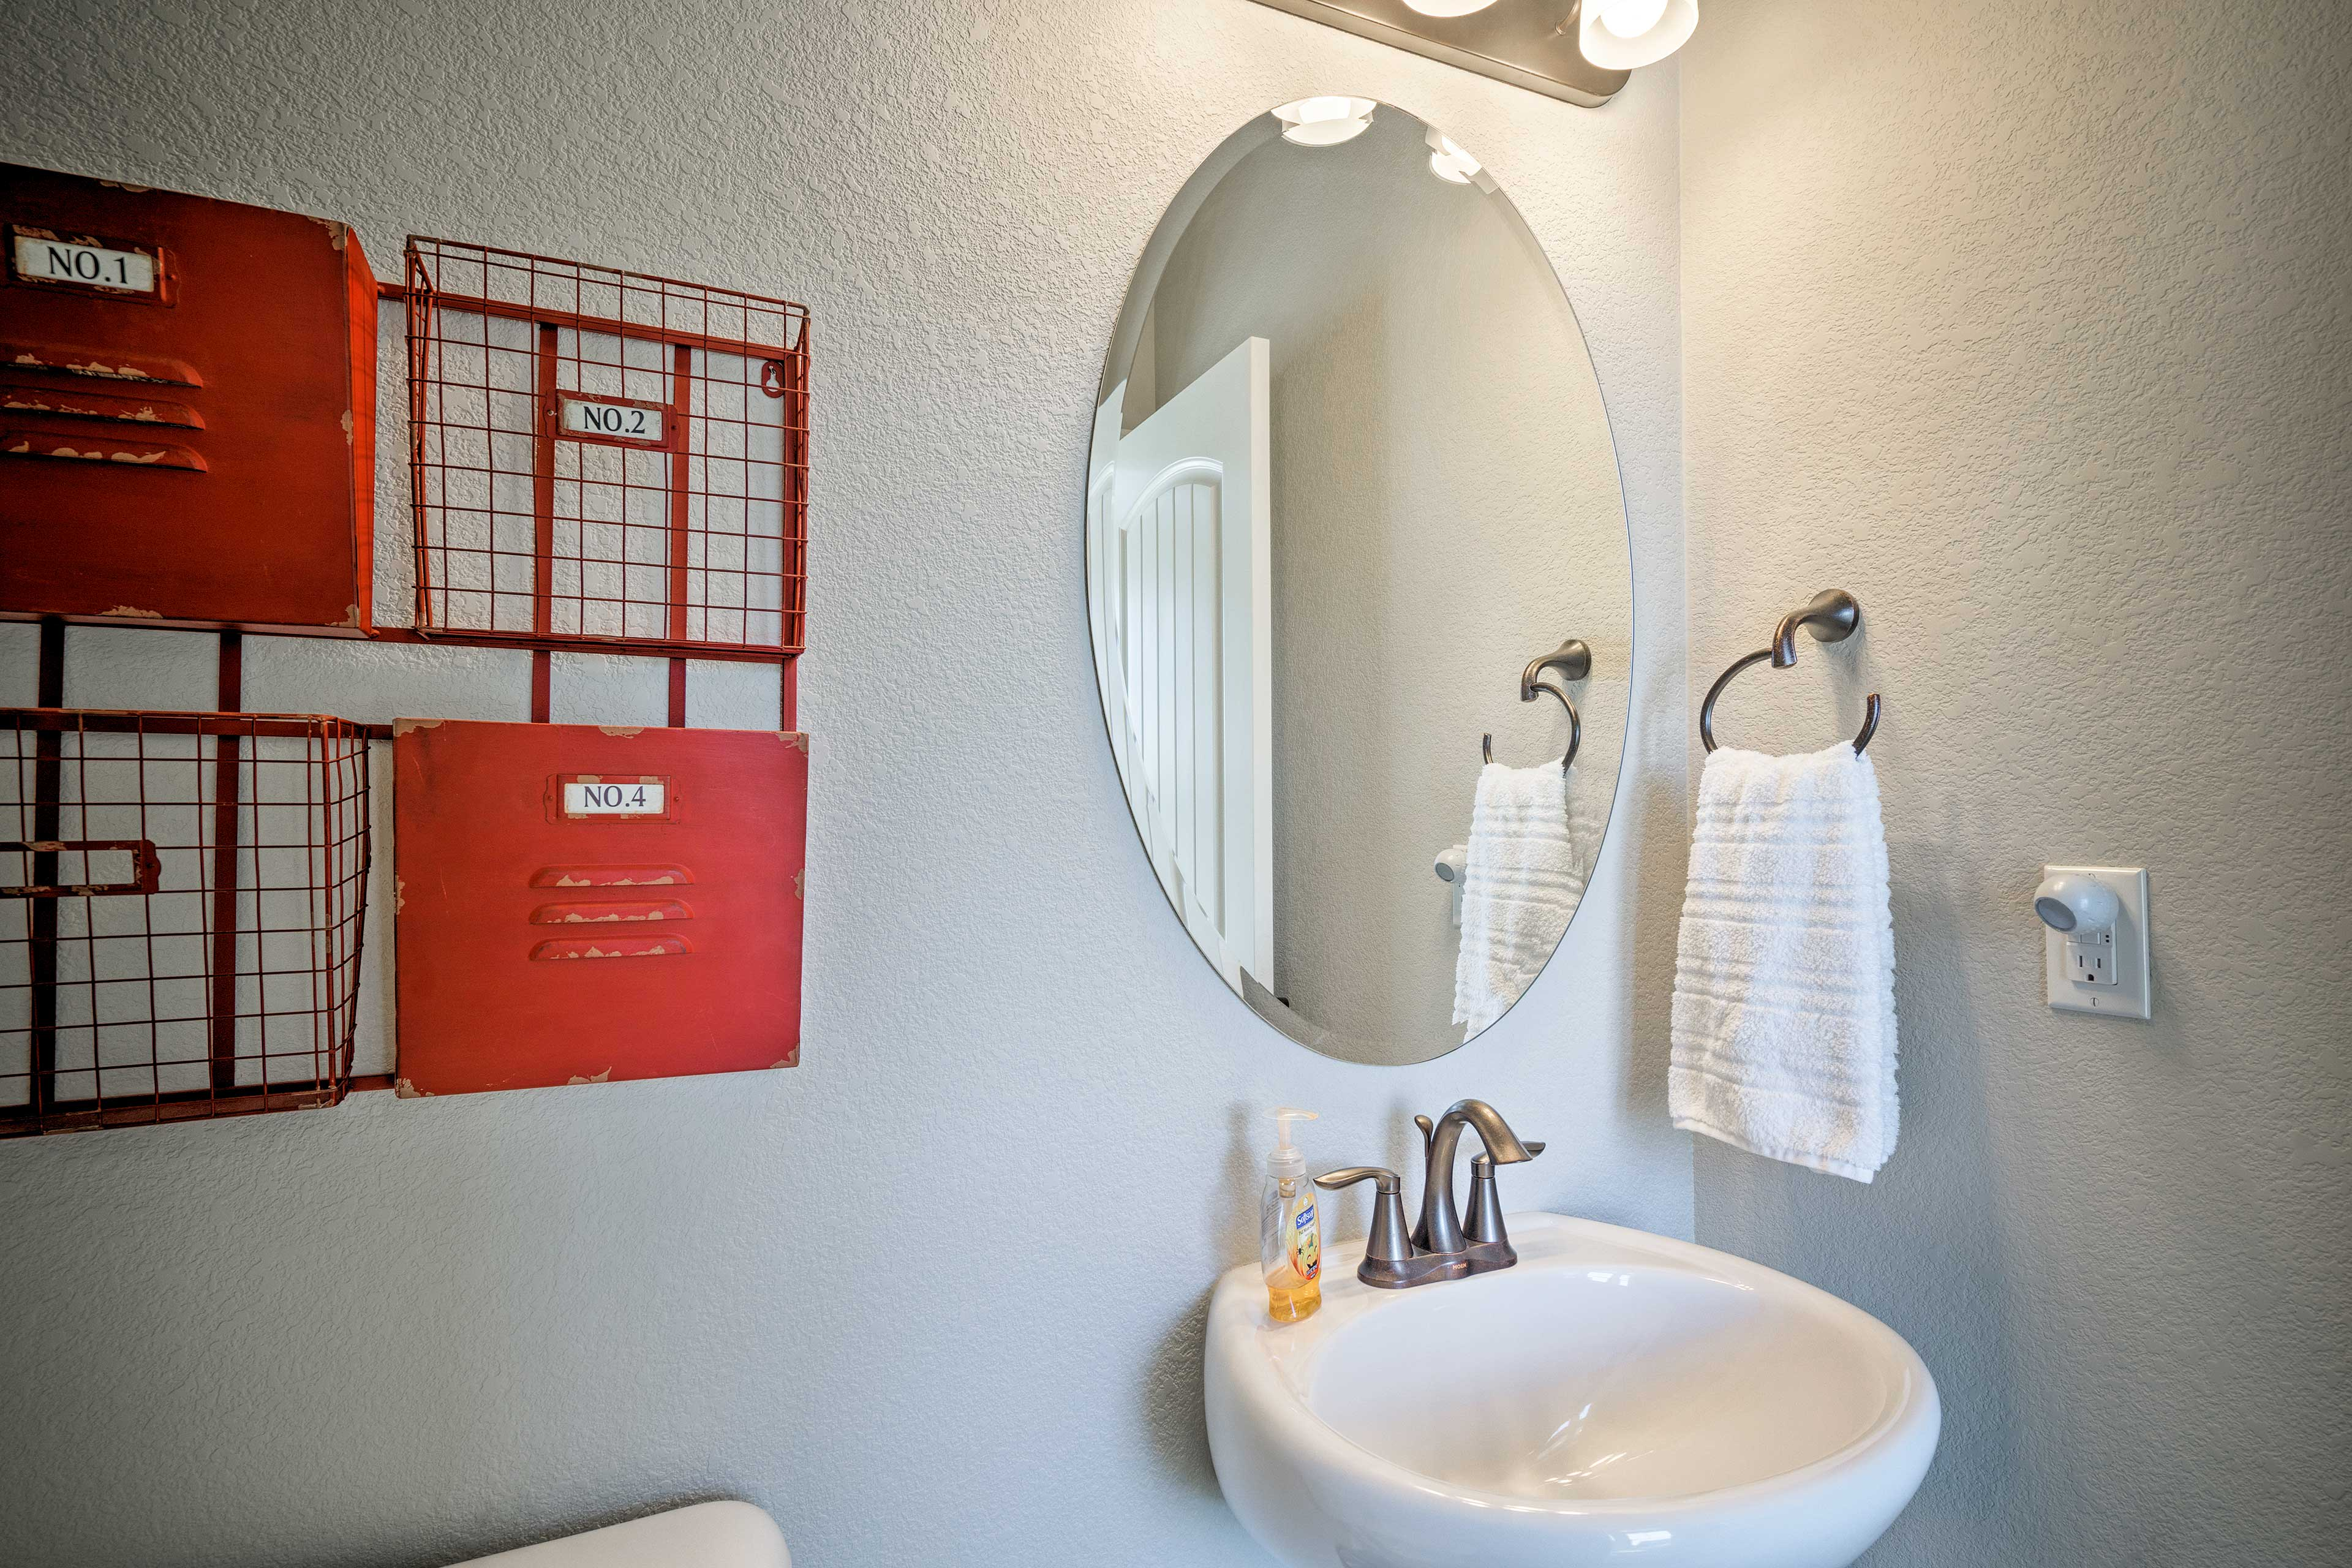 The home features 2 full bathrooms and 1 half bath.